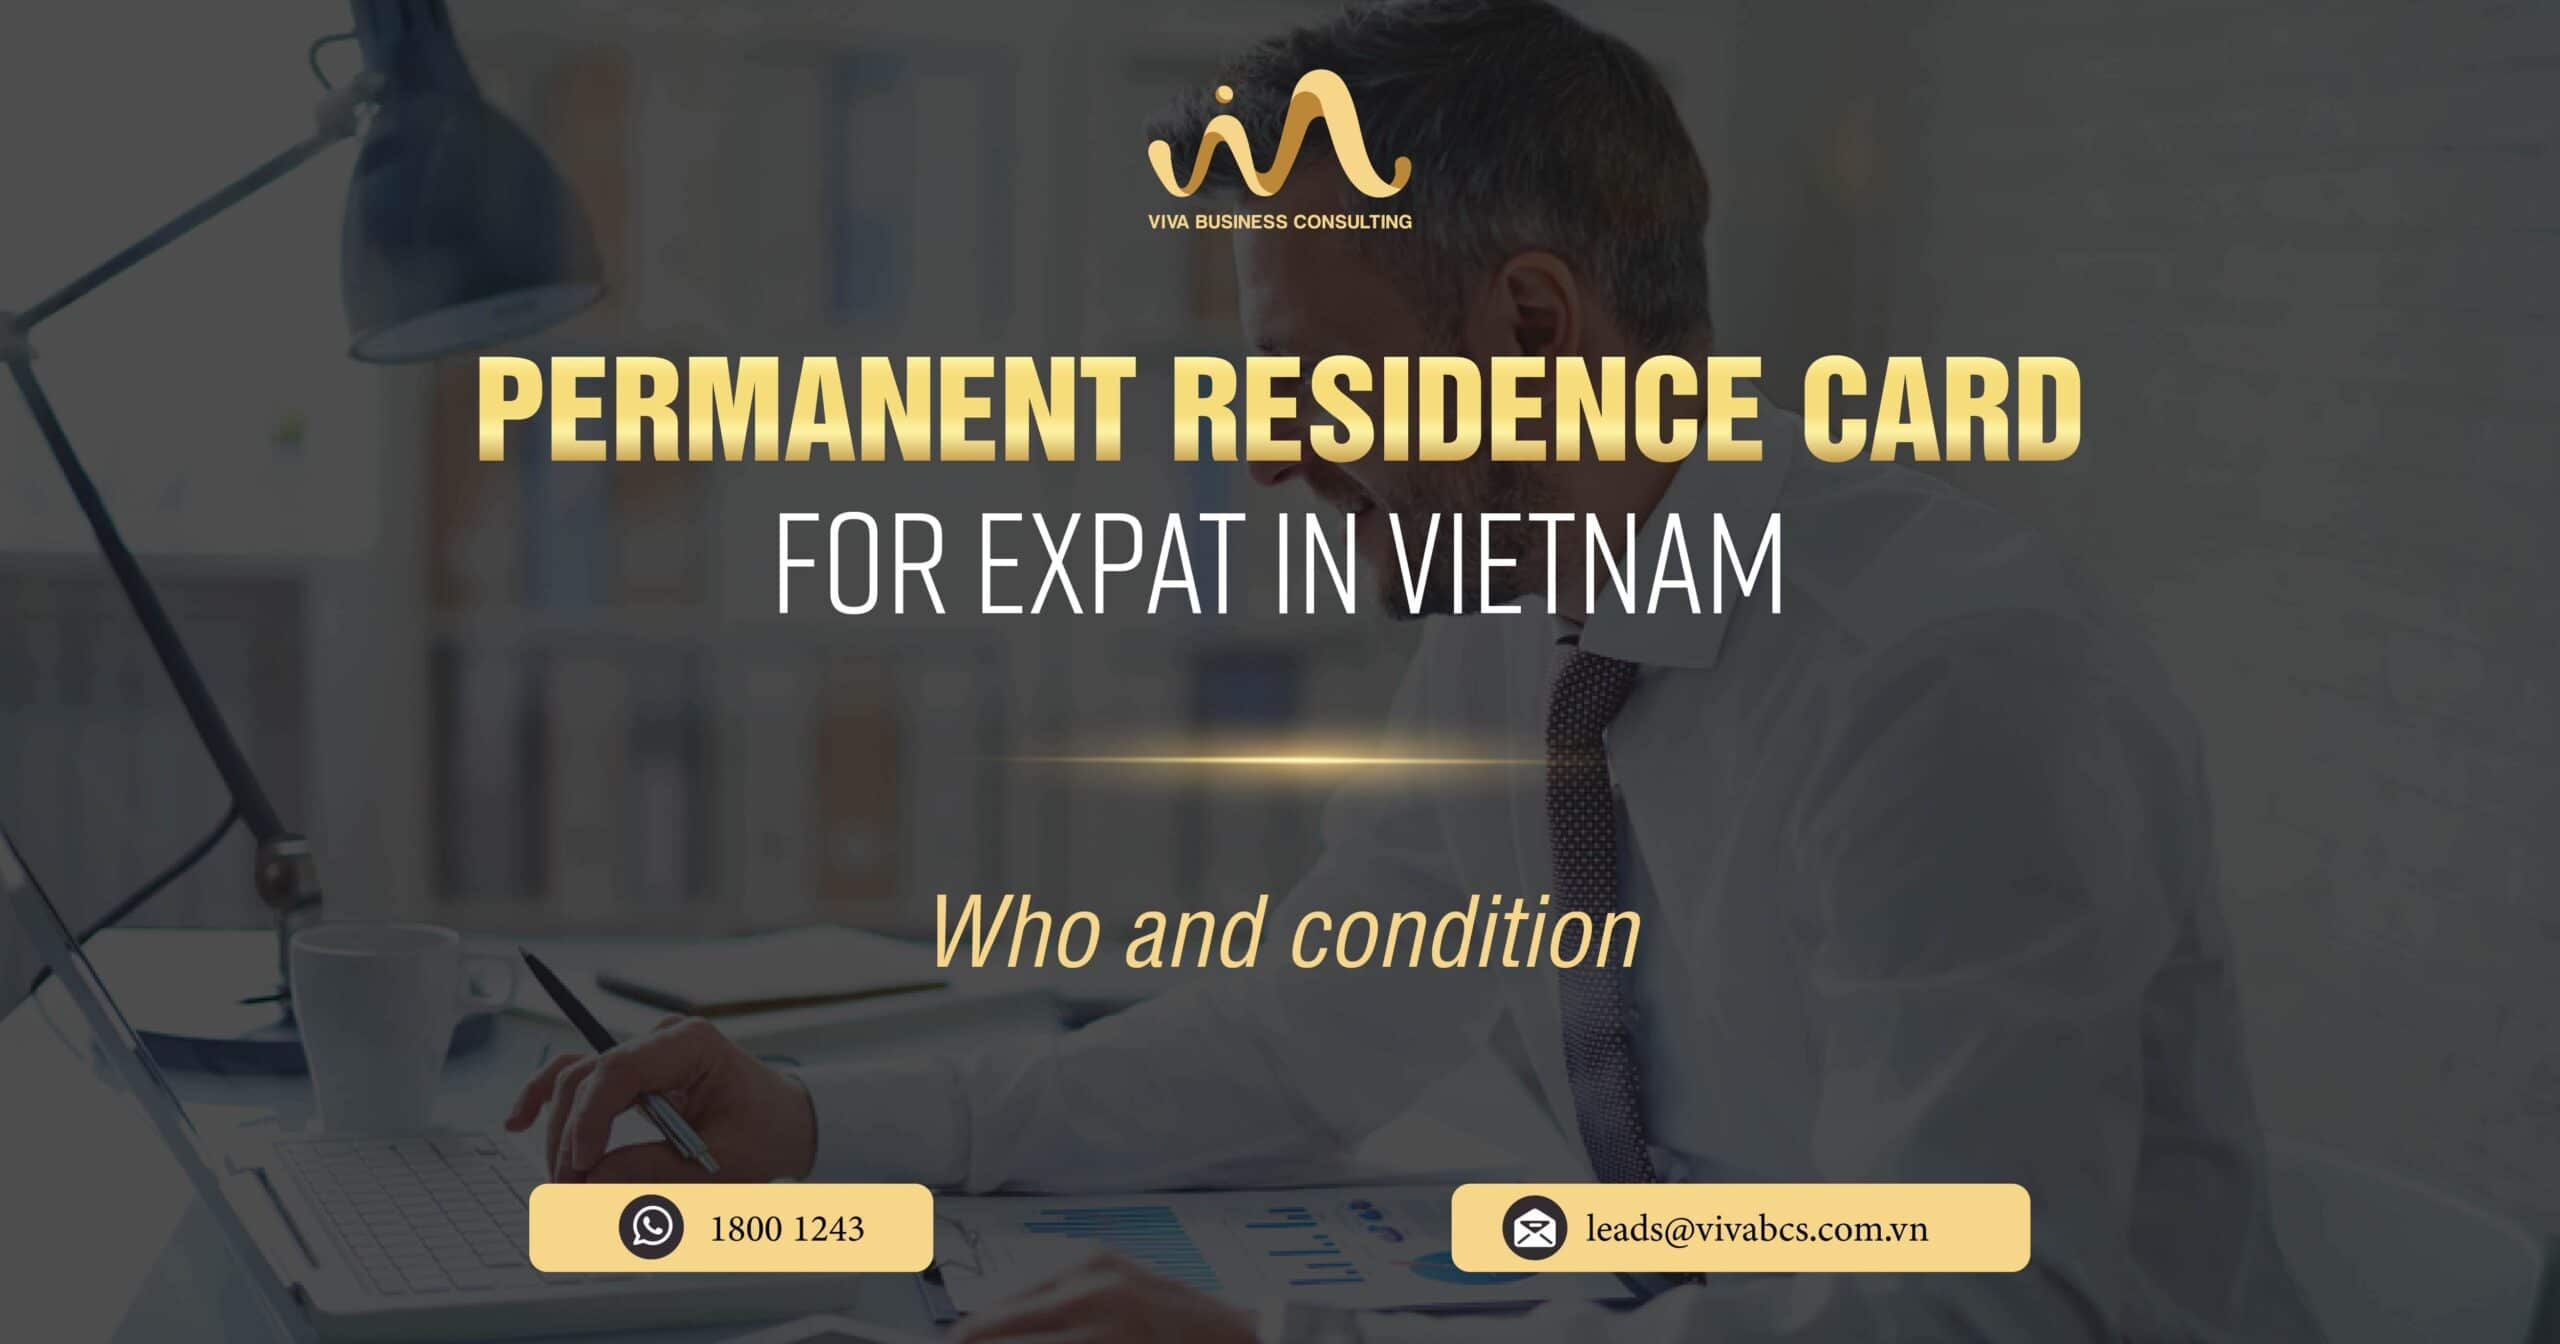 Permanent residence card in Vietnam